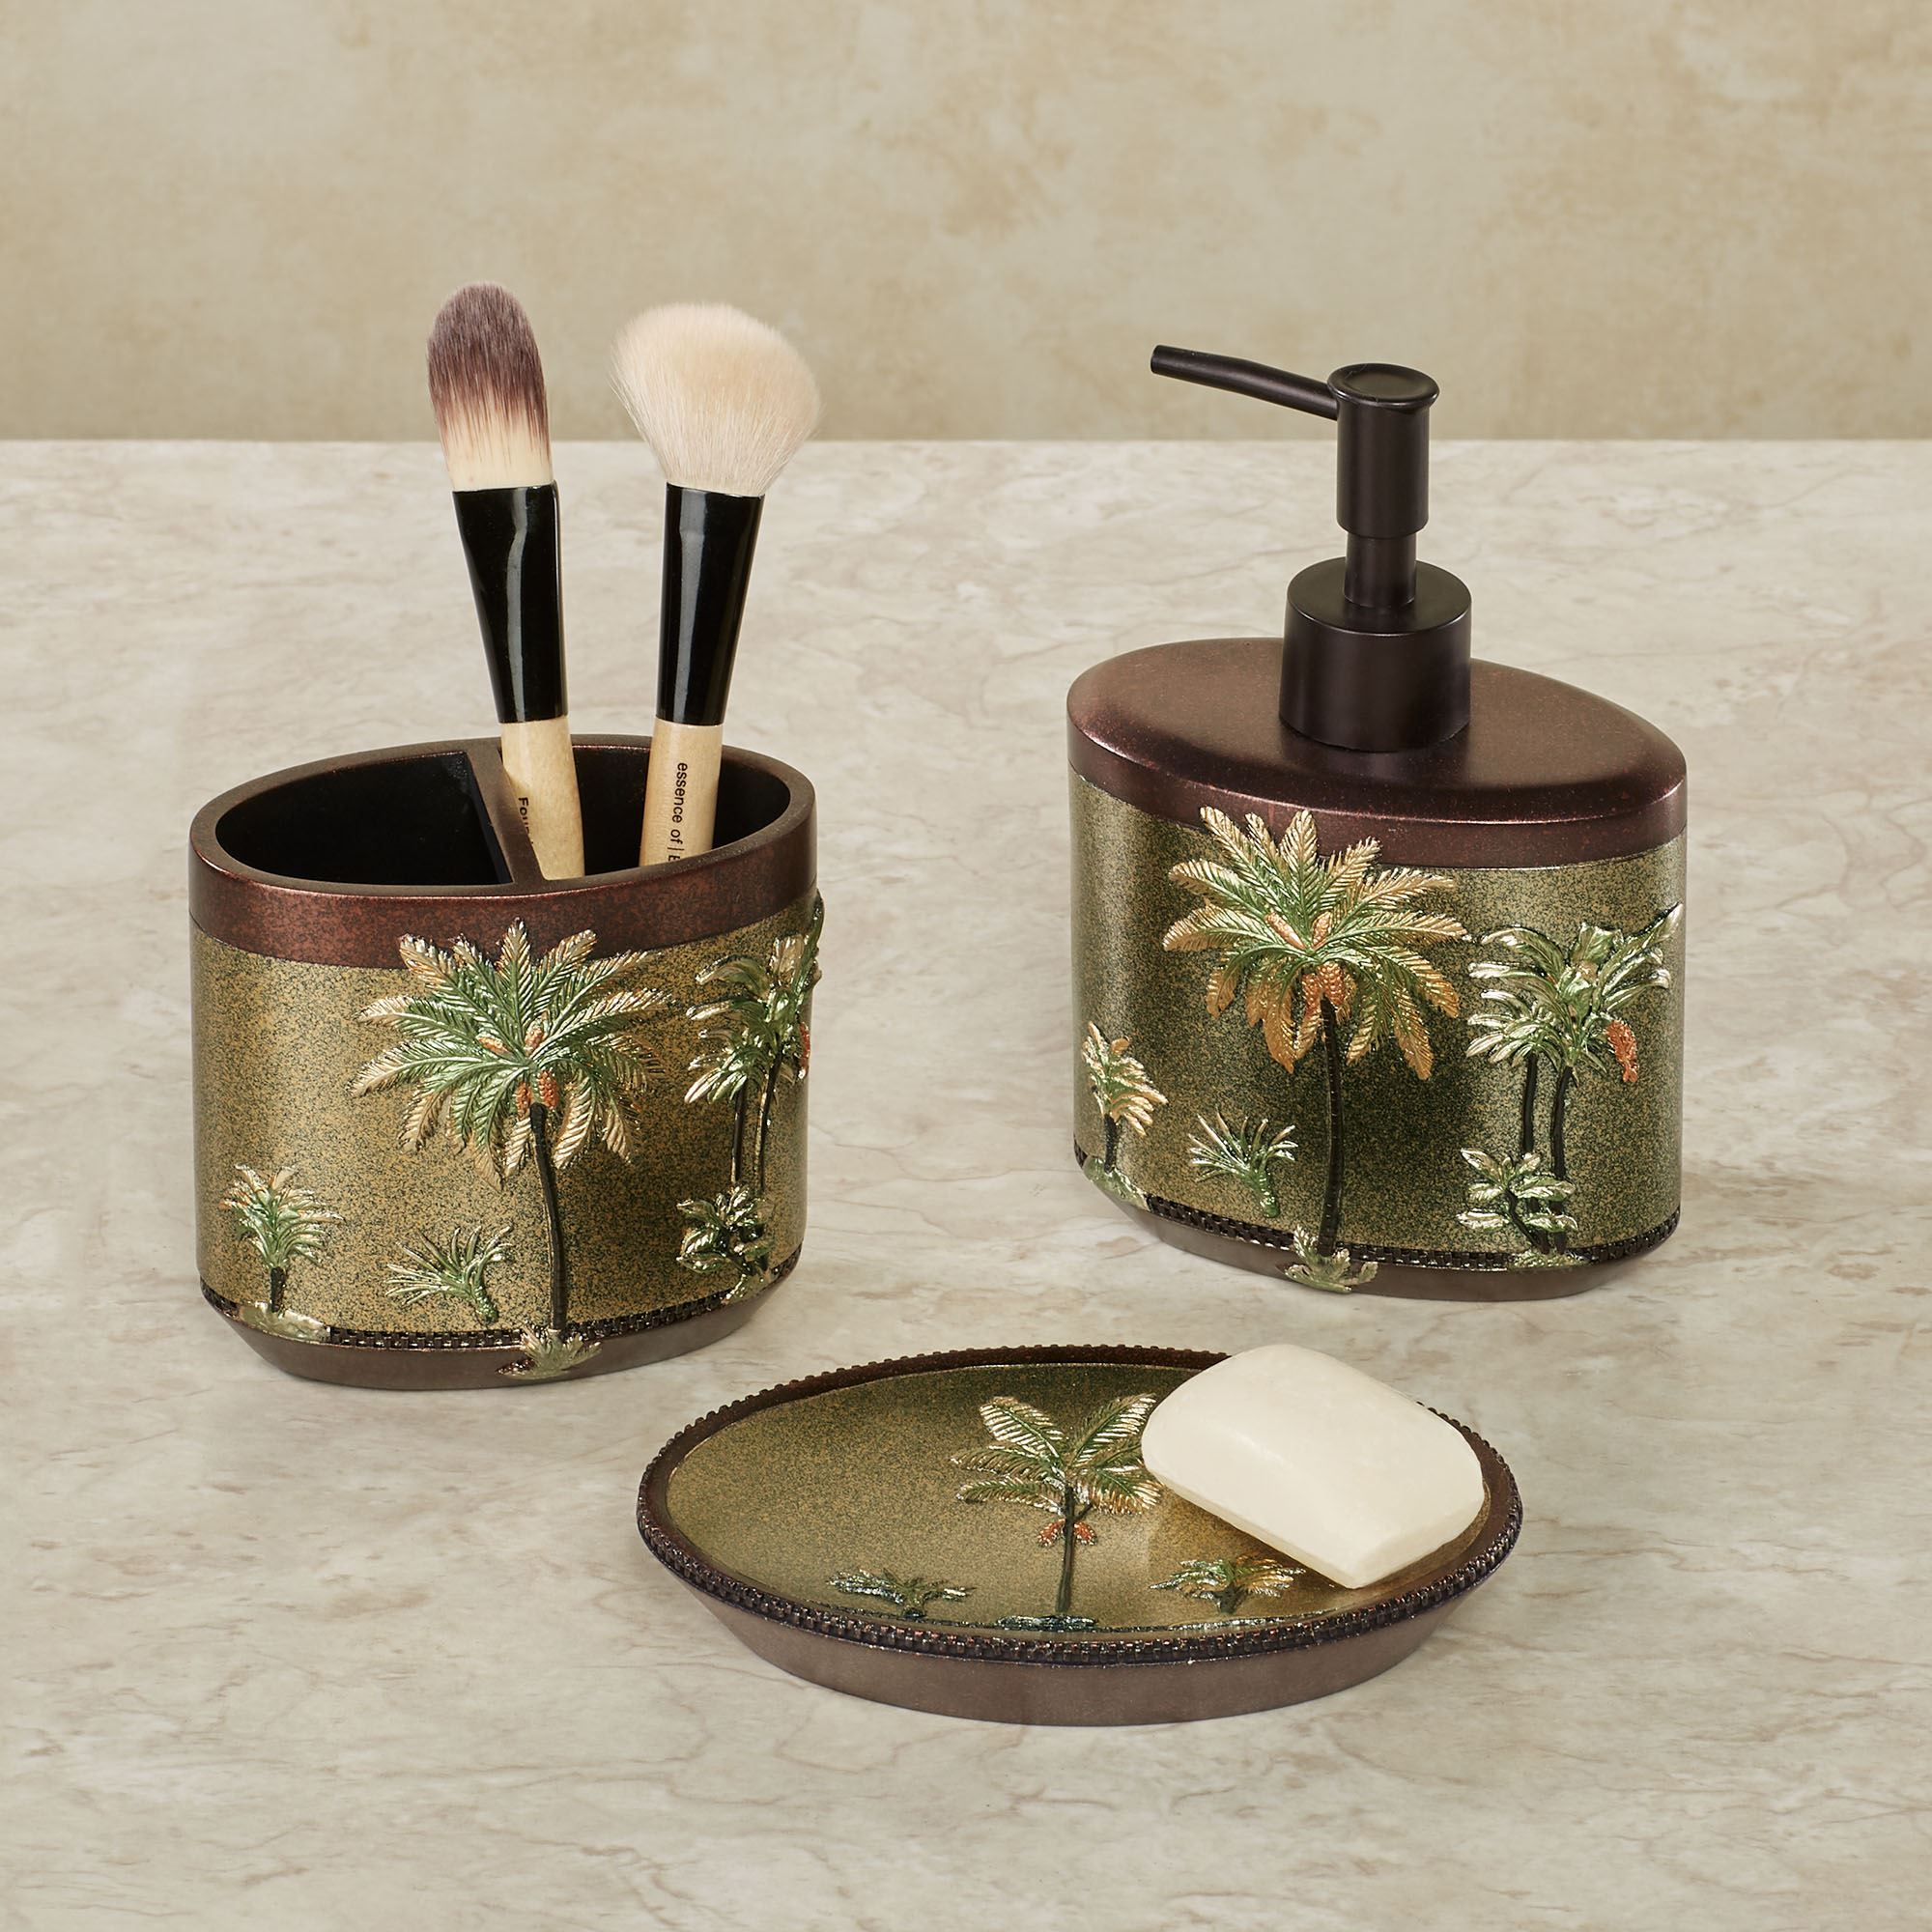 Havana Tropical Palm Tree Bath Accessories Lotion Soap Dispenser Sage Click To Expand